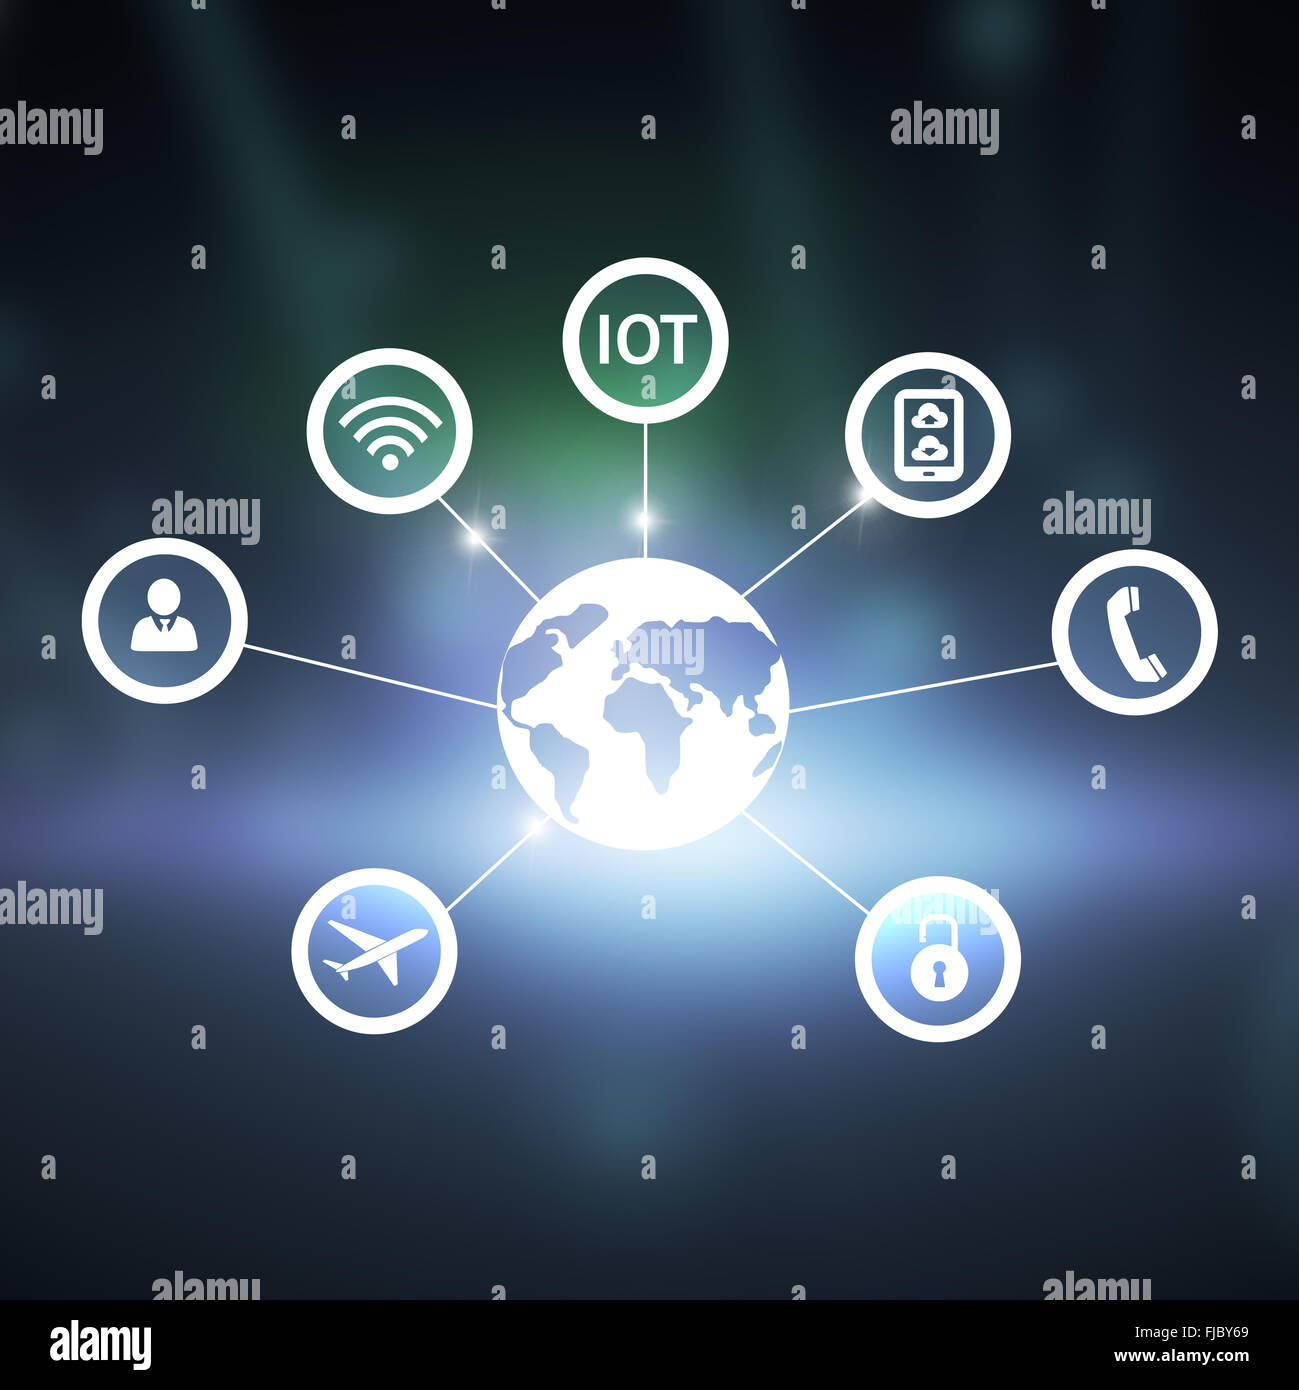 Composite image of internet of things - Stock Image